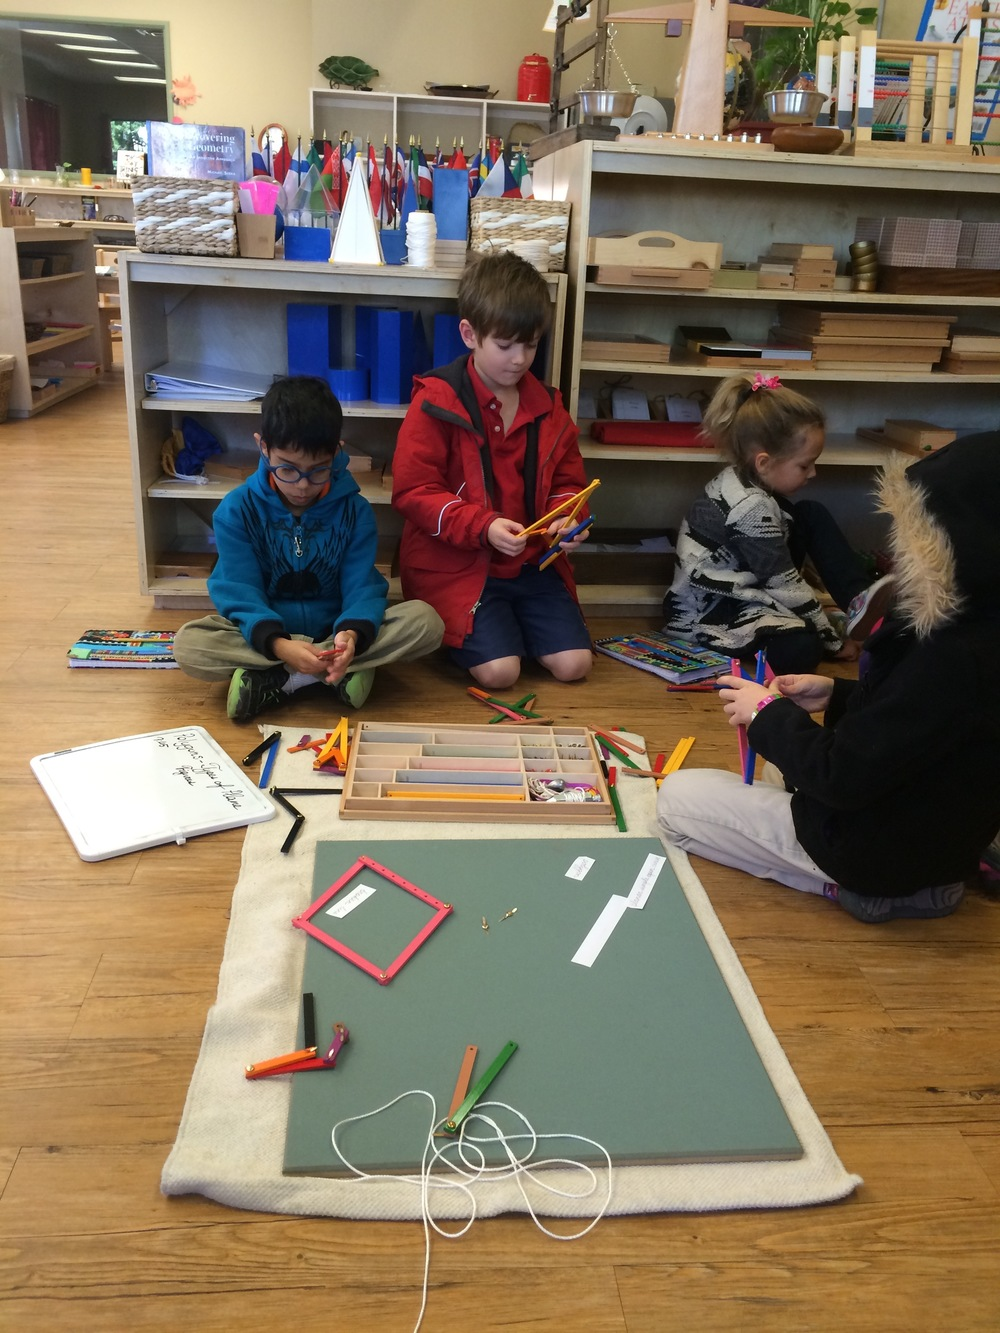 Using a plane and wooden sticks, this group is making polygons